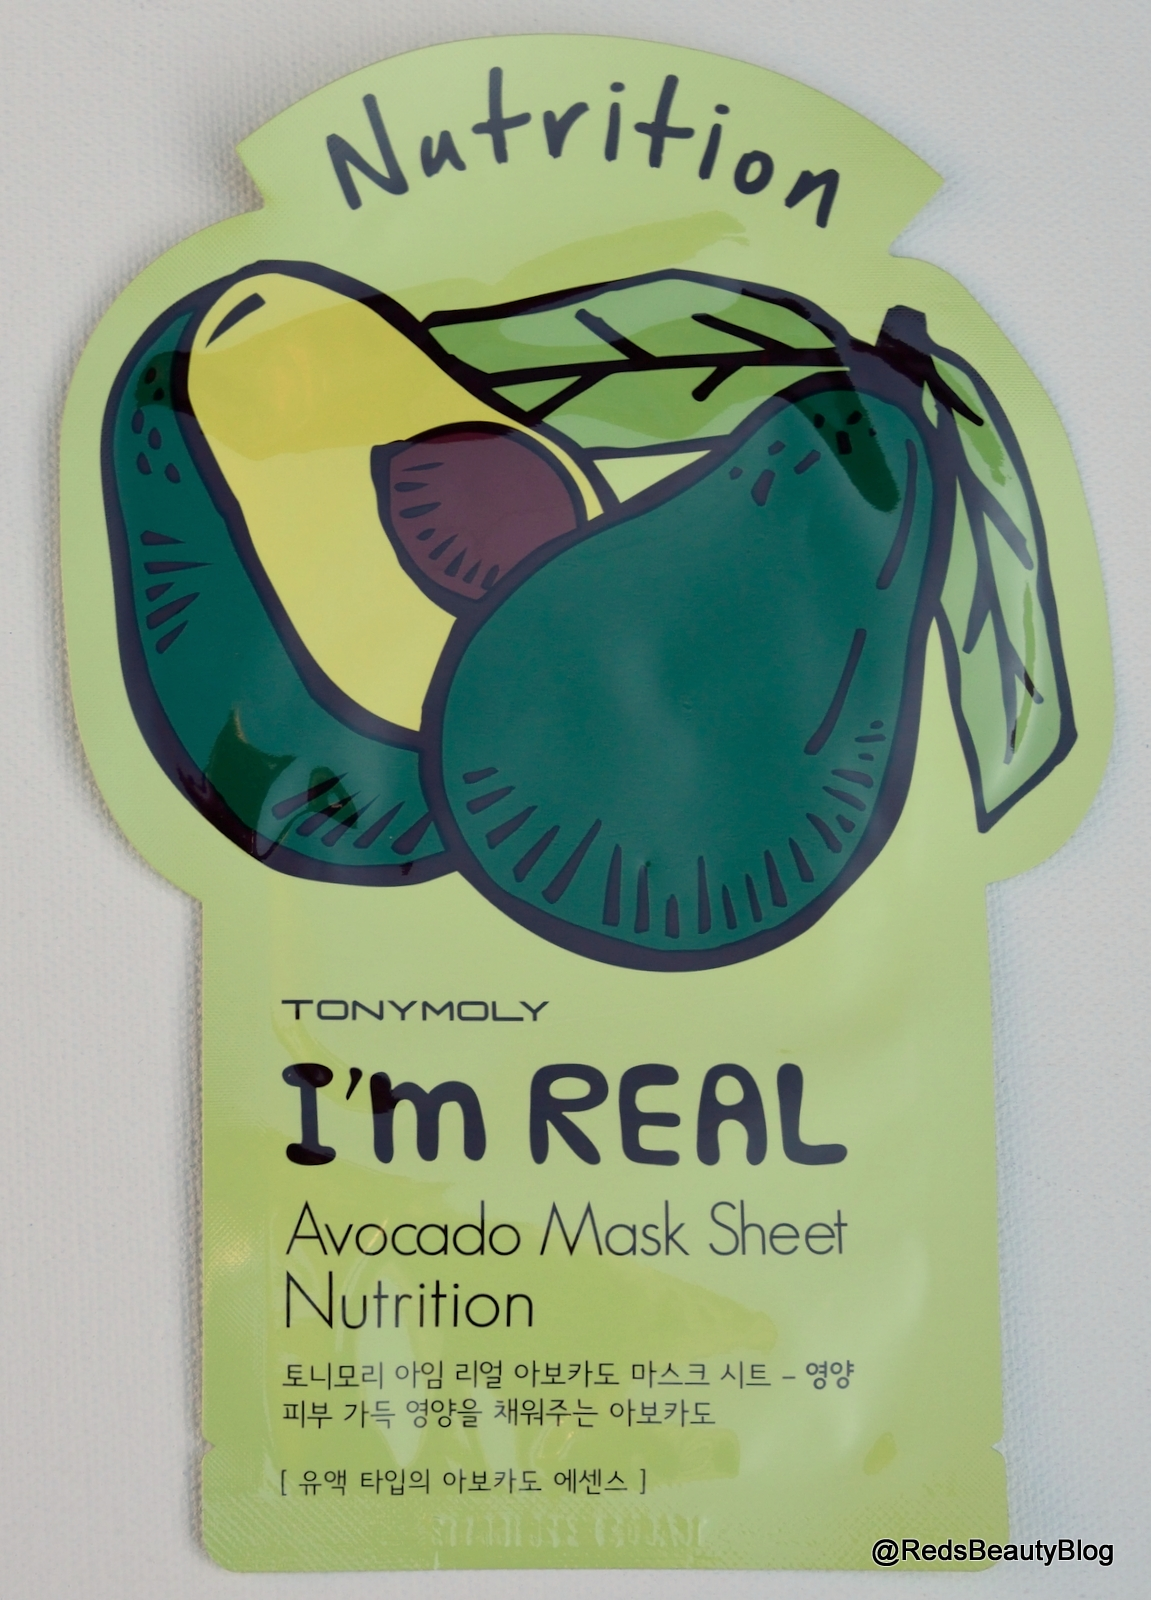 A picture of Tony Moly Im Real Avocado Mask Sheet